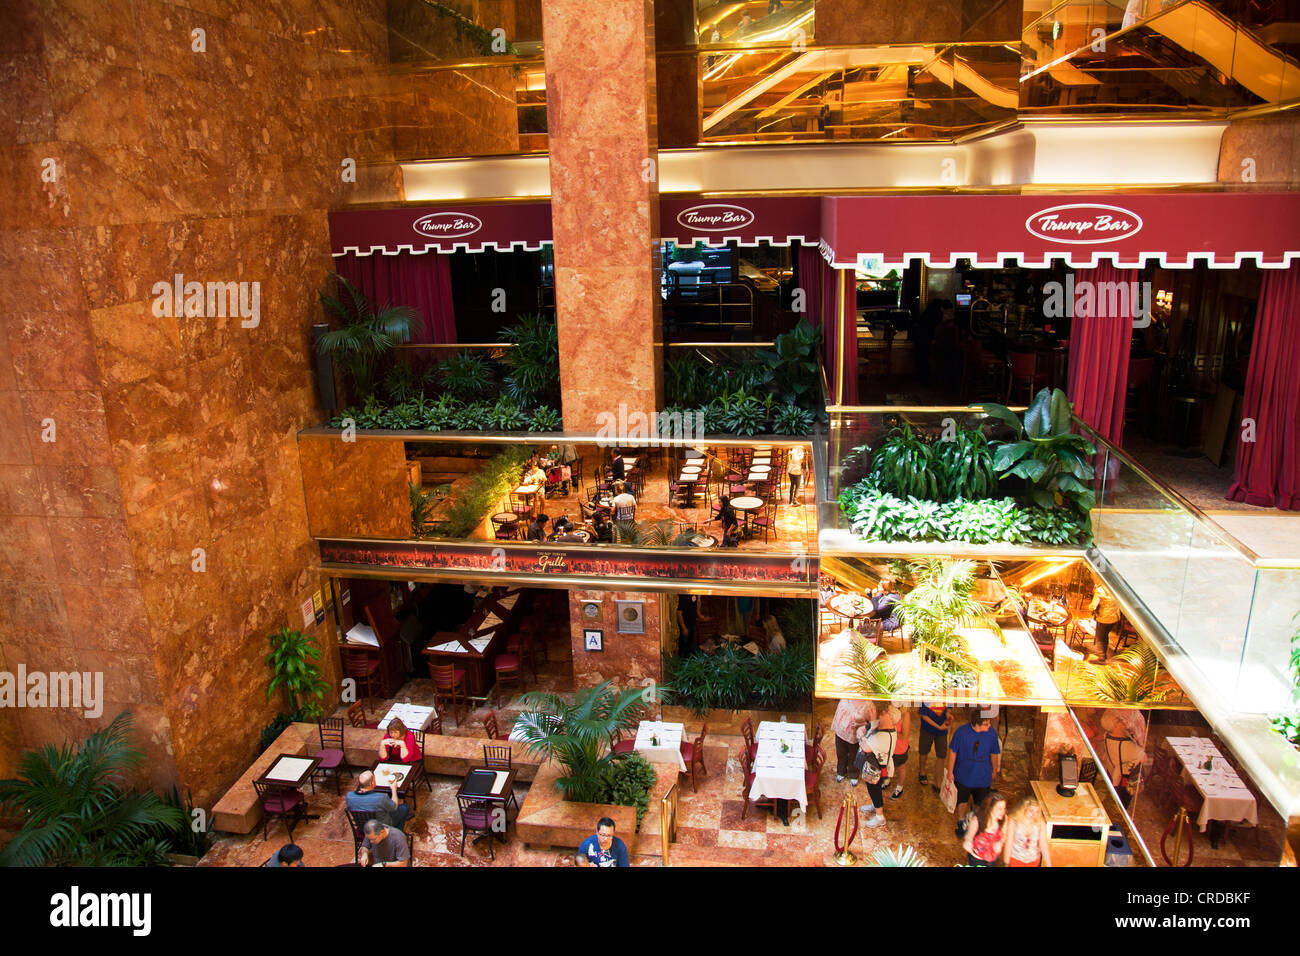 Food Court Inside The Trump Tower Building On Fifth Avenue